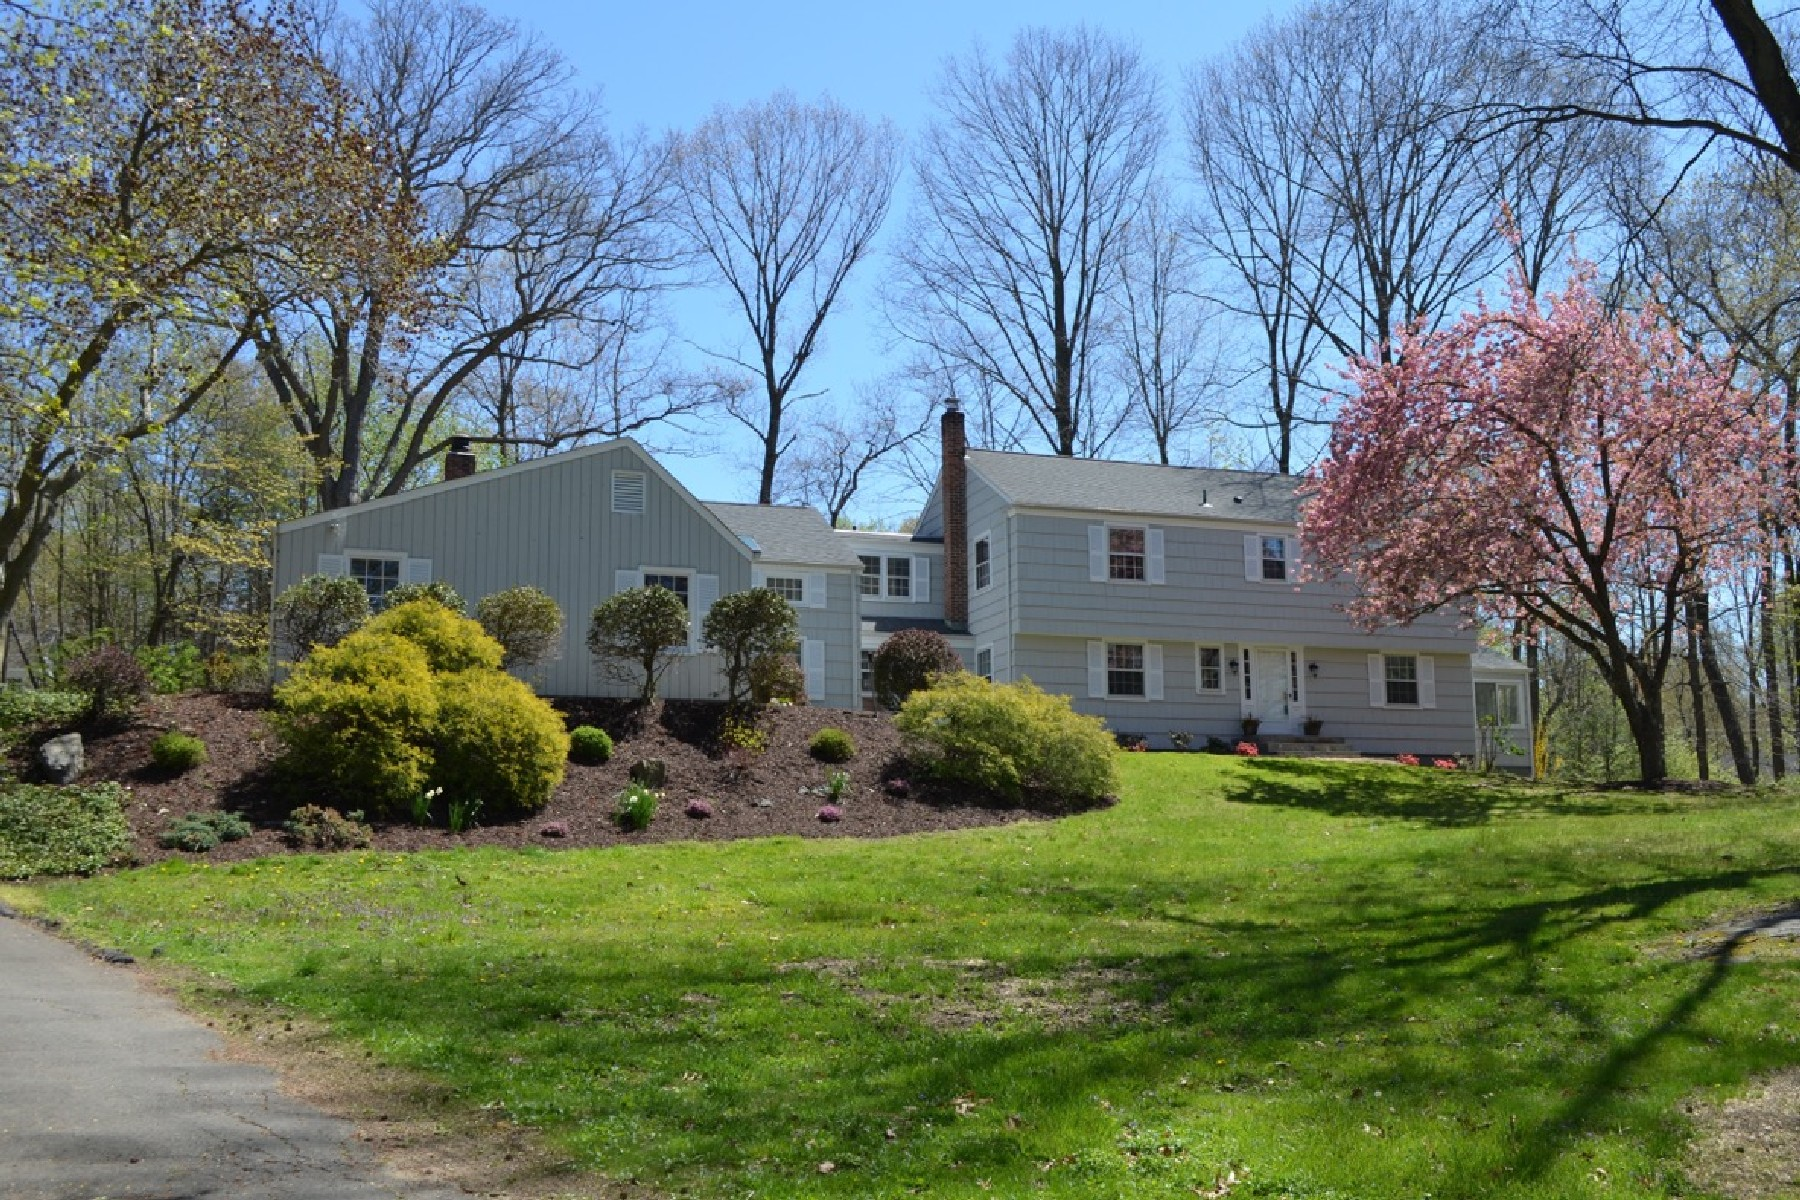 Single Family Home for Sale at Turn-Key Colonial 34 Brushy Hill Road Darien, Connecticut, 06820 United States